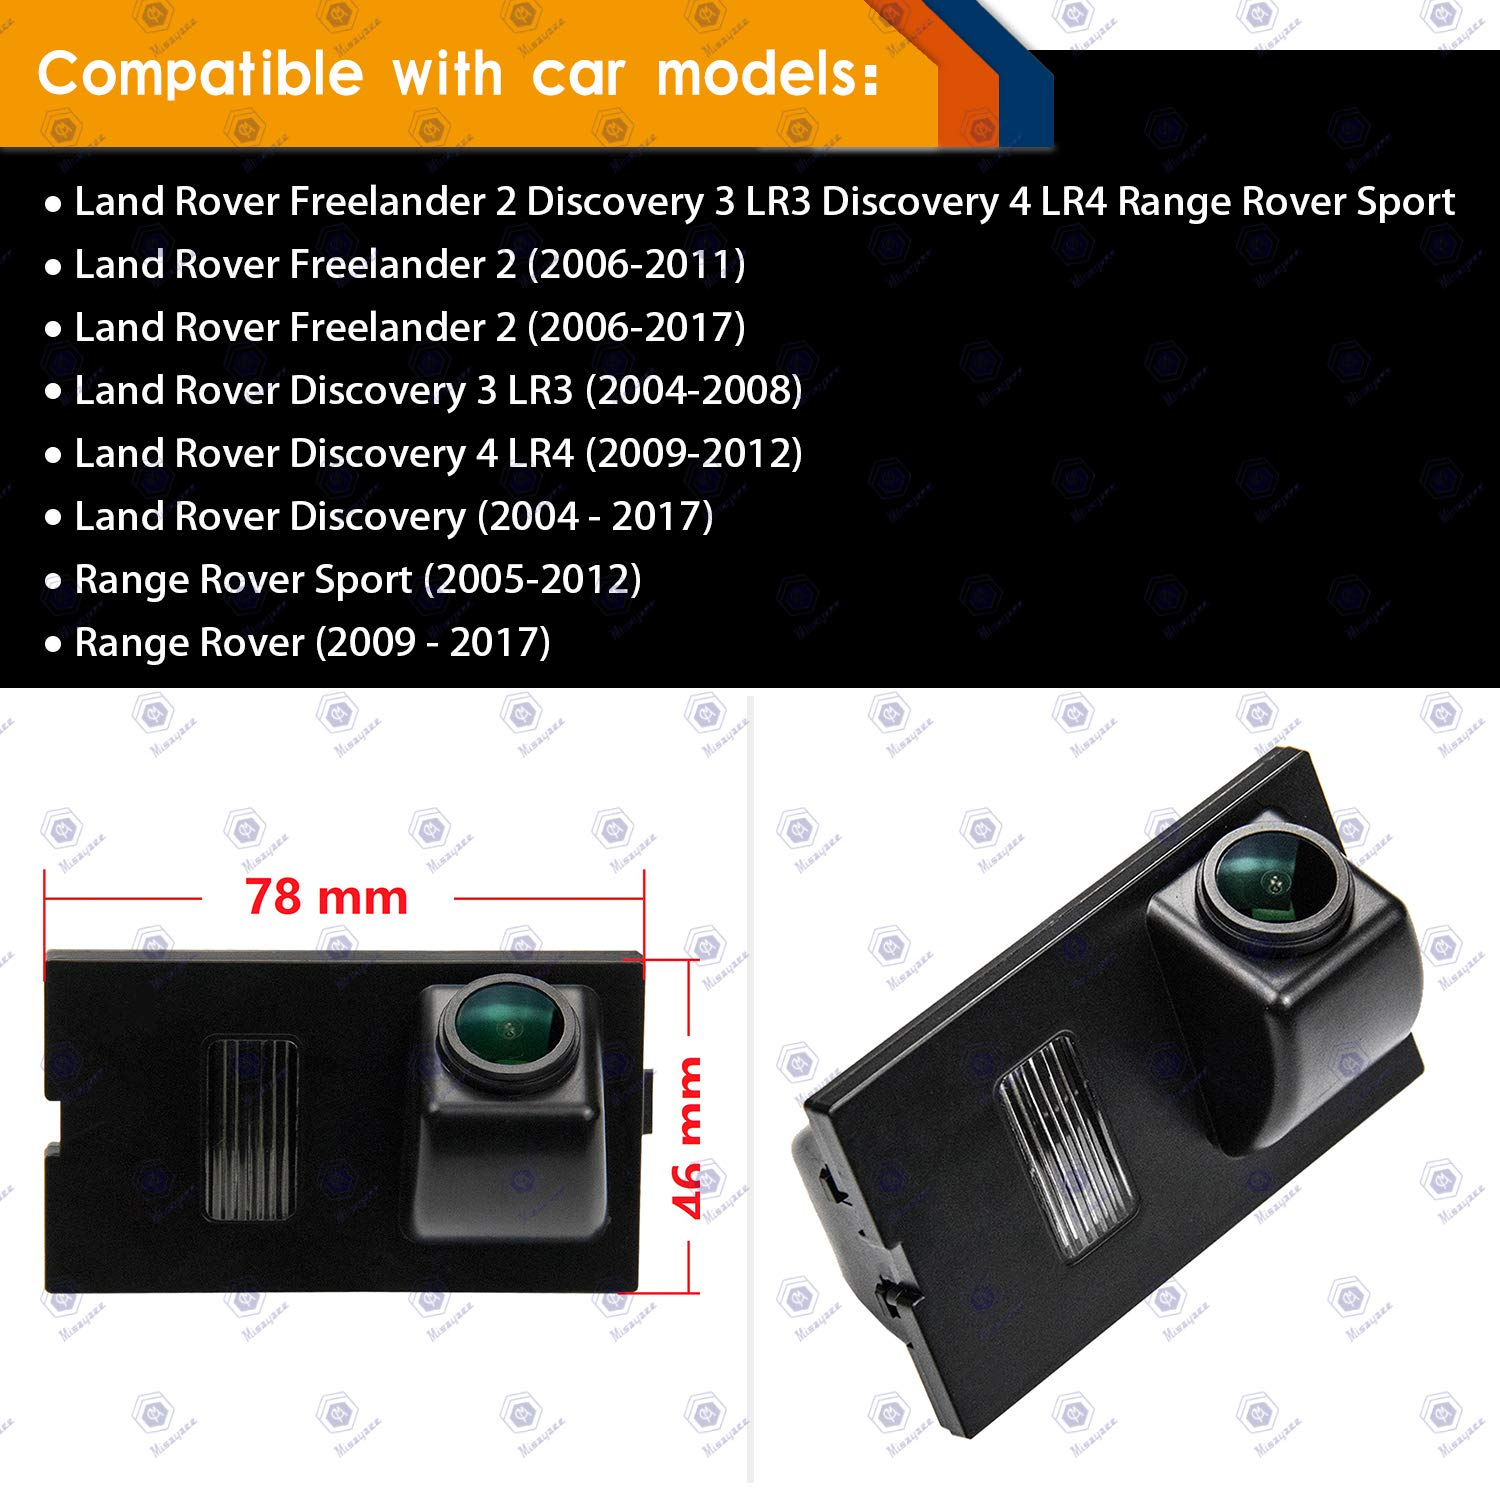 Auto Wayfeng/® Special Car Rearview Rear View Reverse Backup Camera for Land Rover Discovery 3 Range Rover Sport Freelander Freelander 2